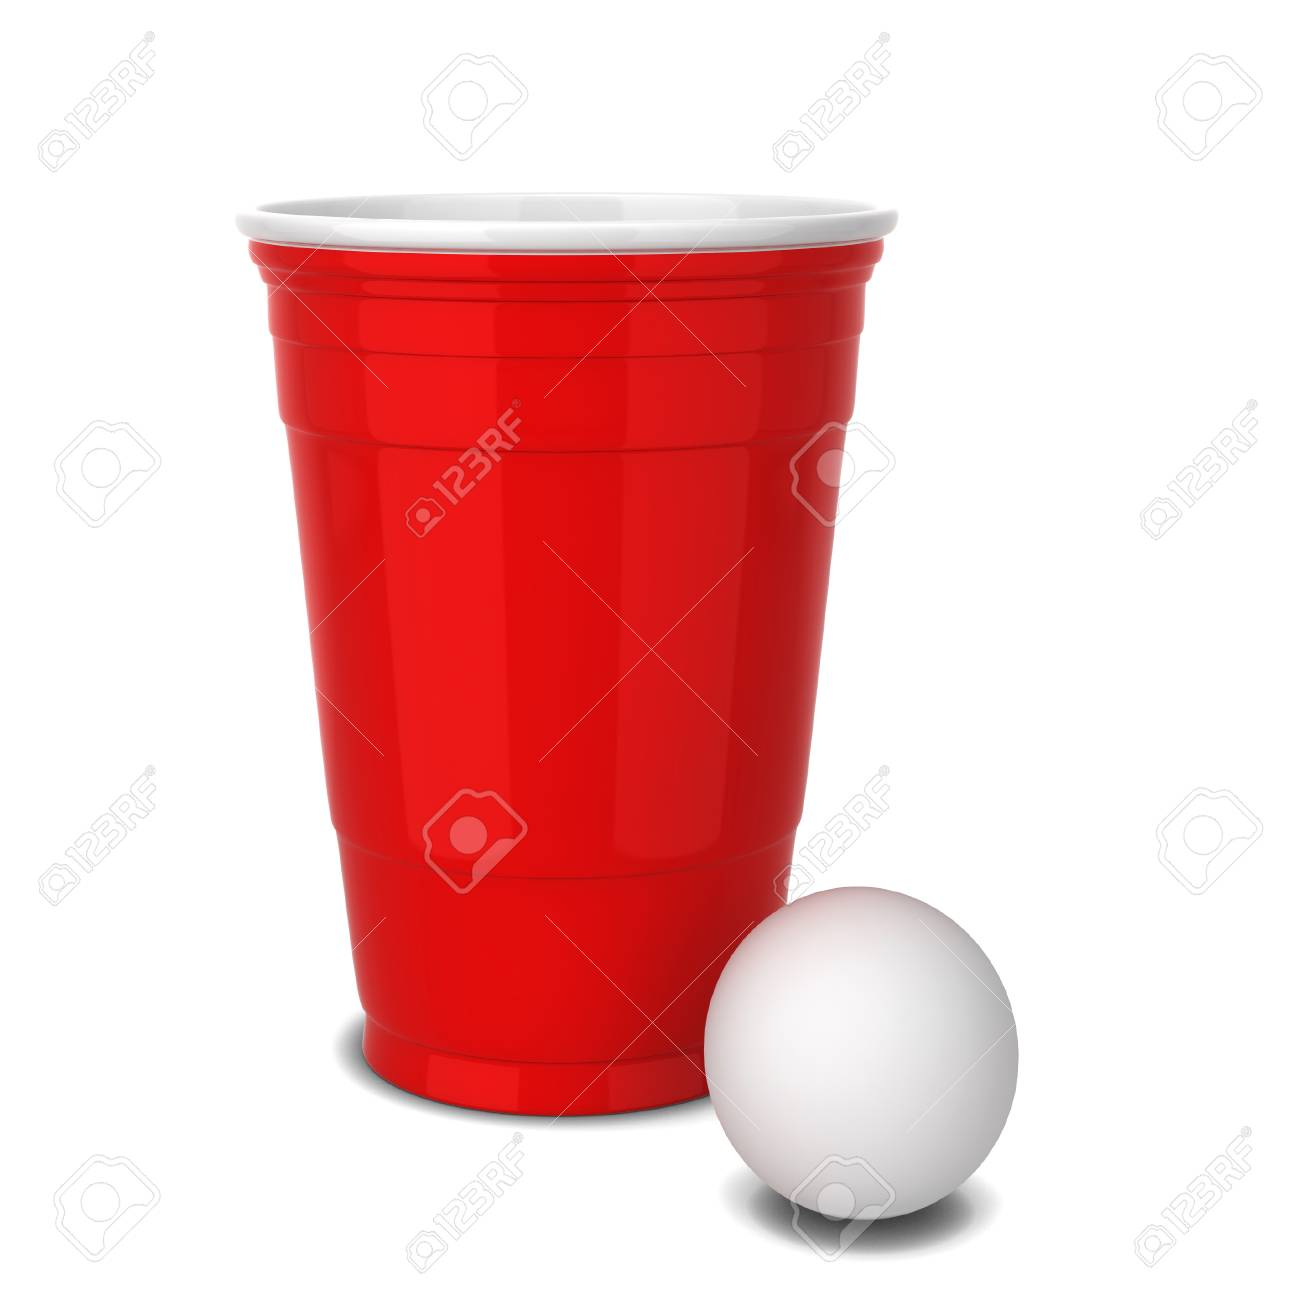 Red Plastic Cup  3d Illustration Isolated On White Background Stock